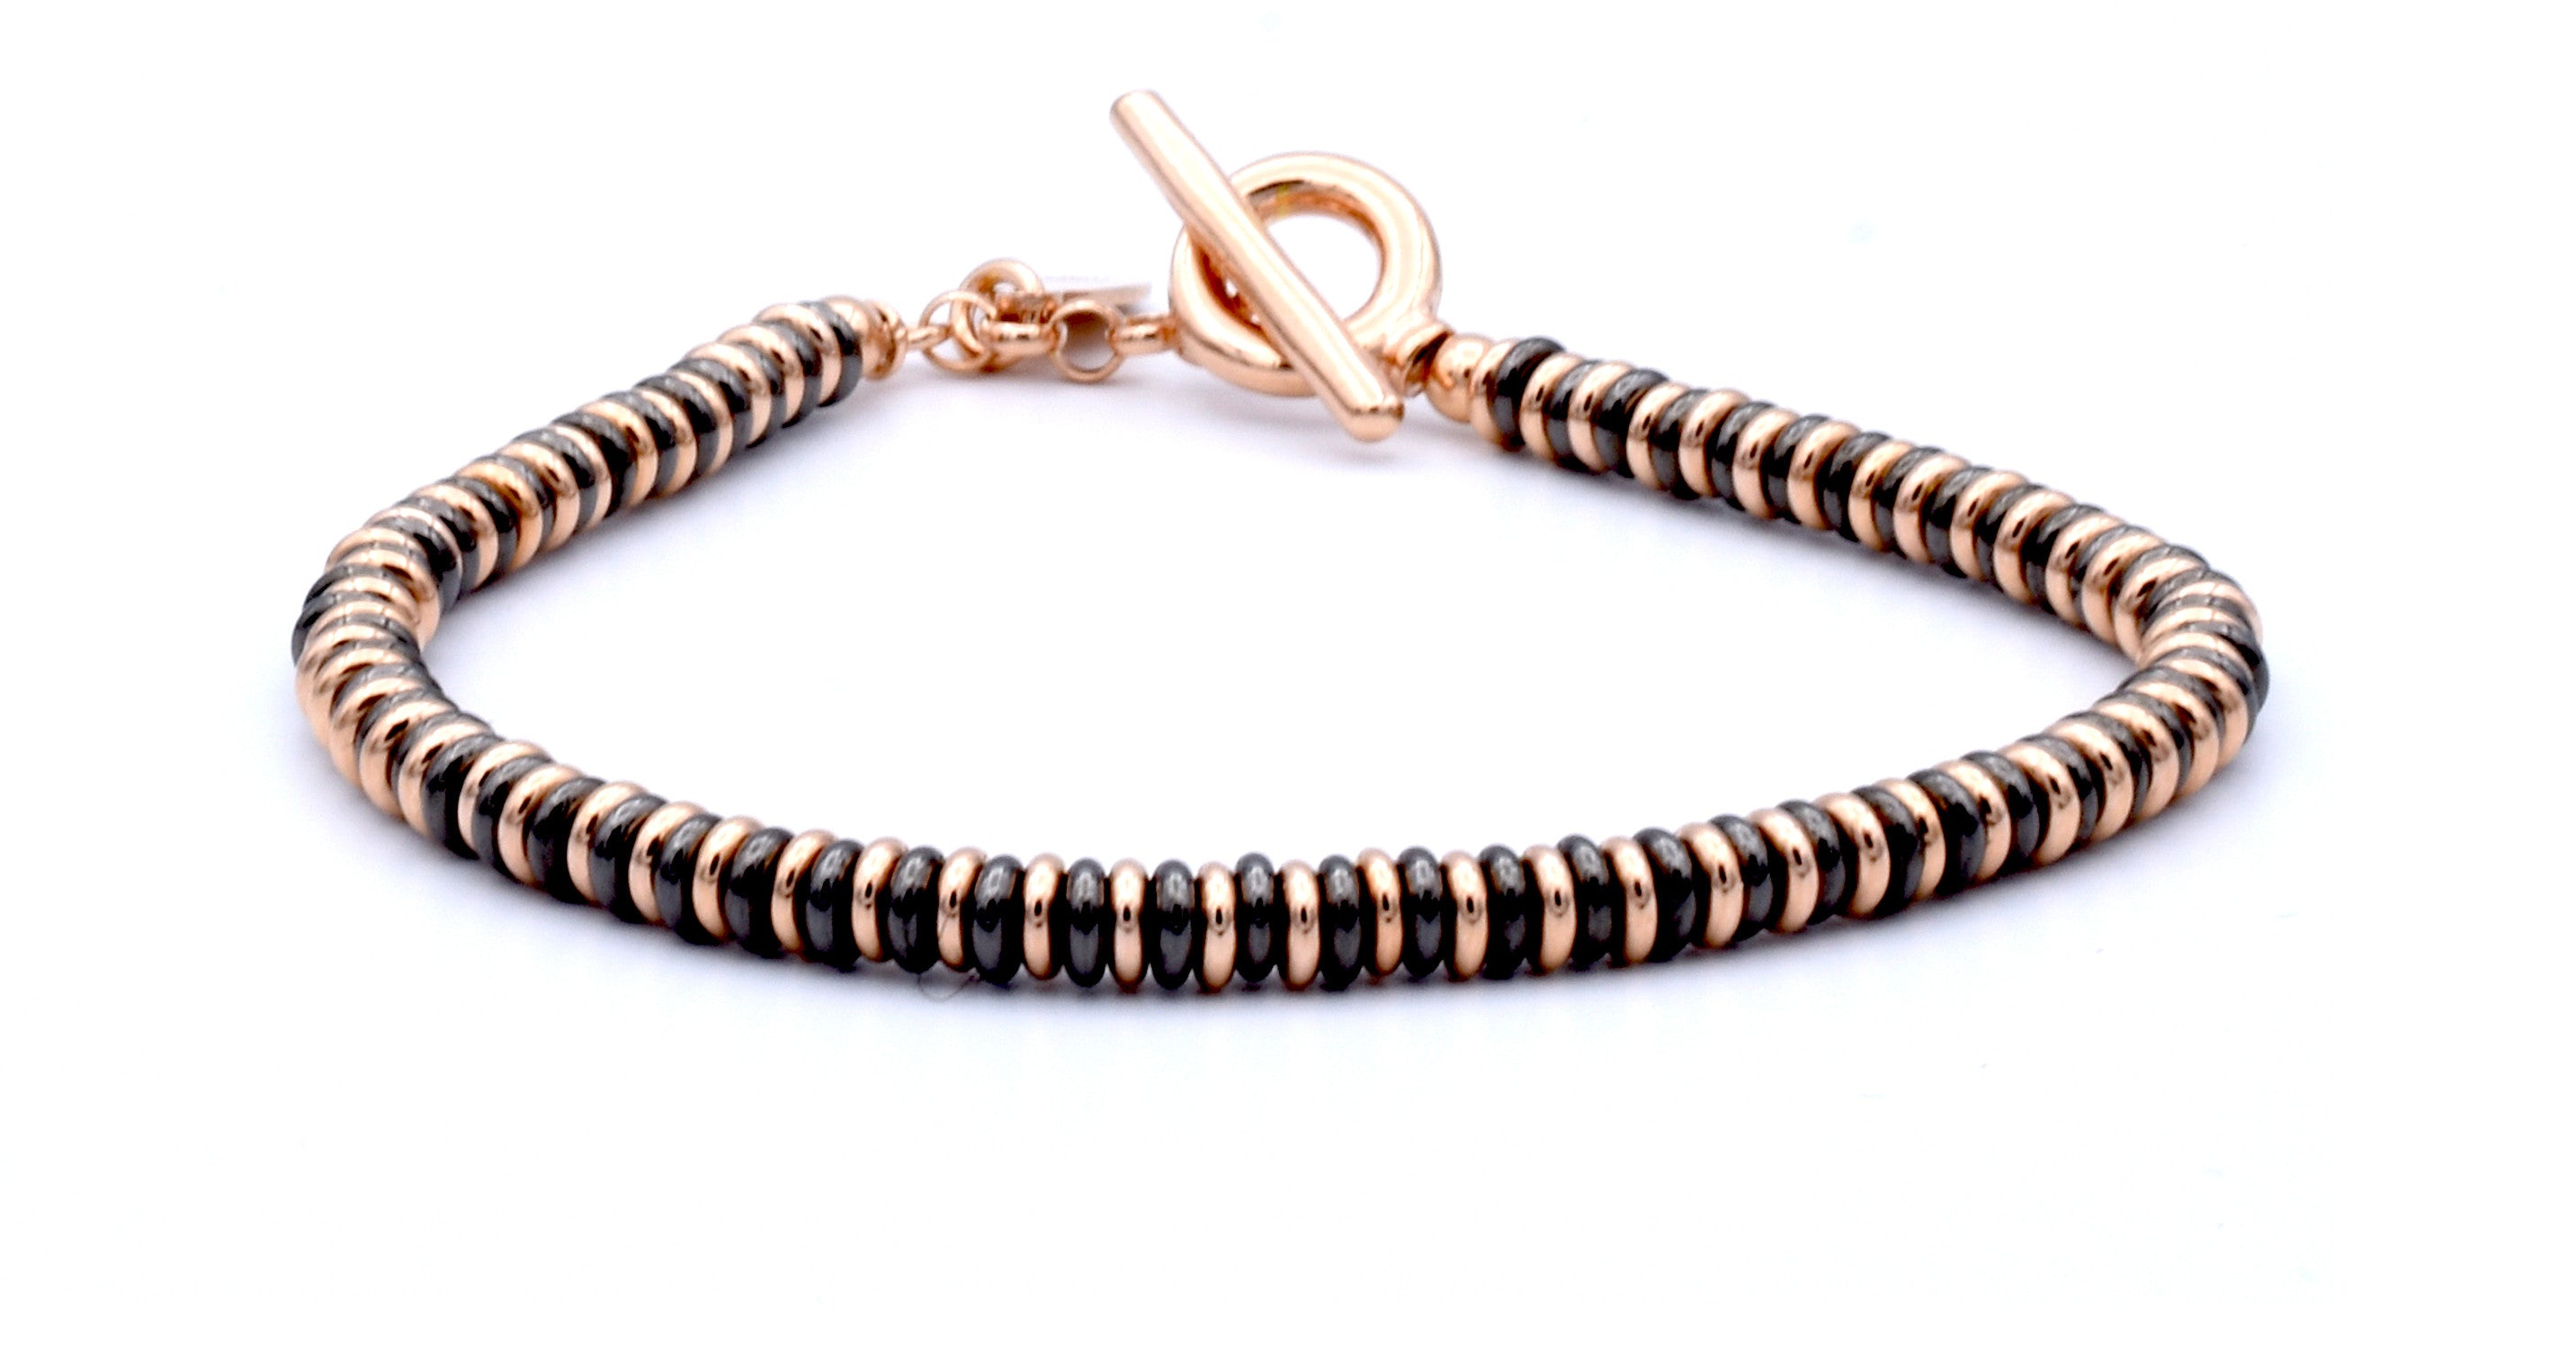 Small Beed Plated Pink Gold And Black PVD